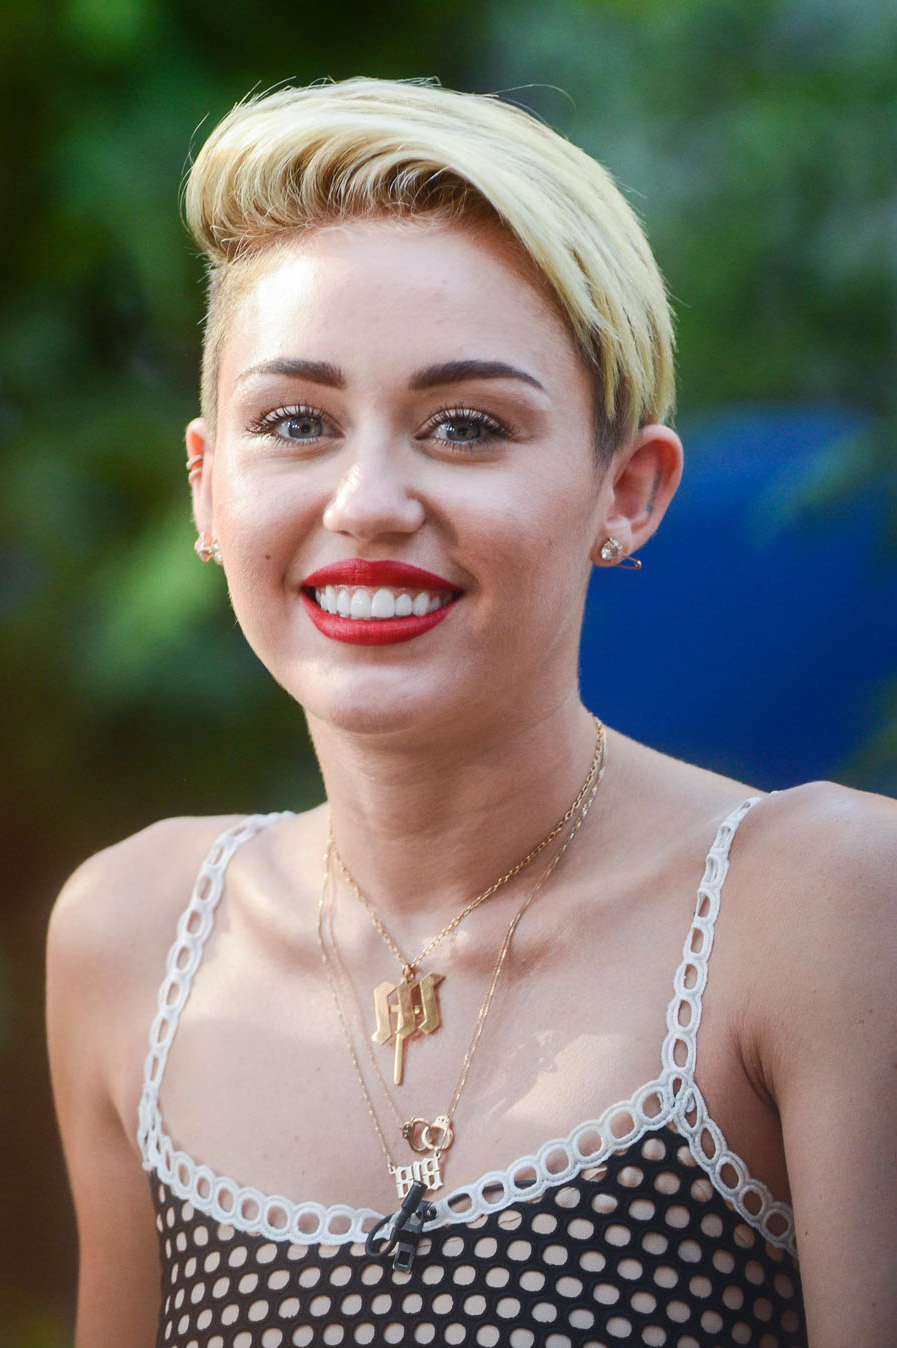 Miley Cyrus Is Already Sick Of Her Short Hair | Stylecaster Throughout Miley Cyrus Short Haircuts (View 2 of 25)